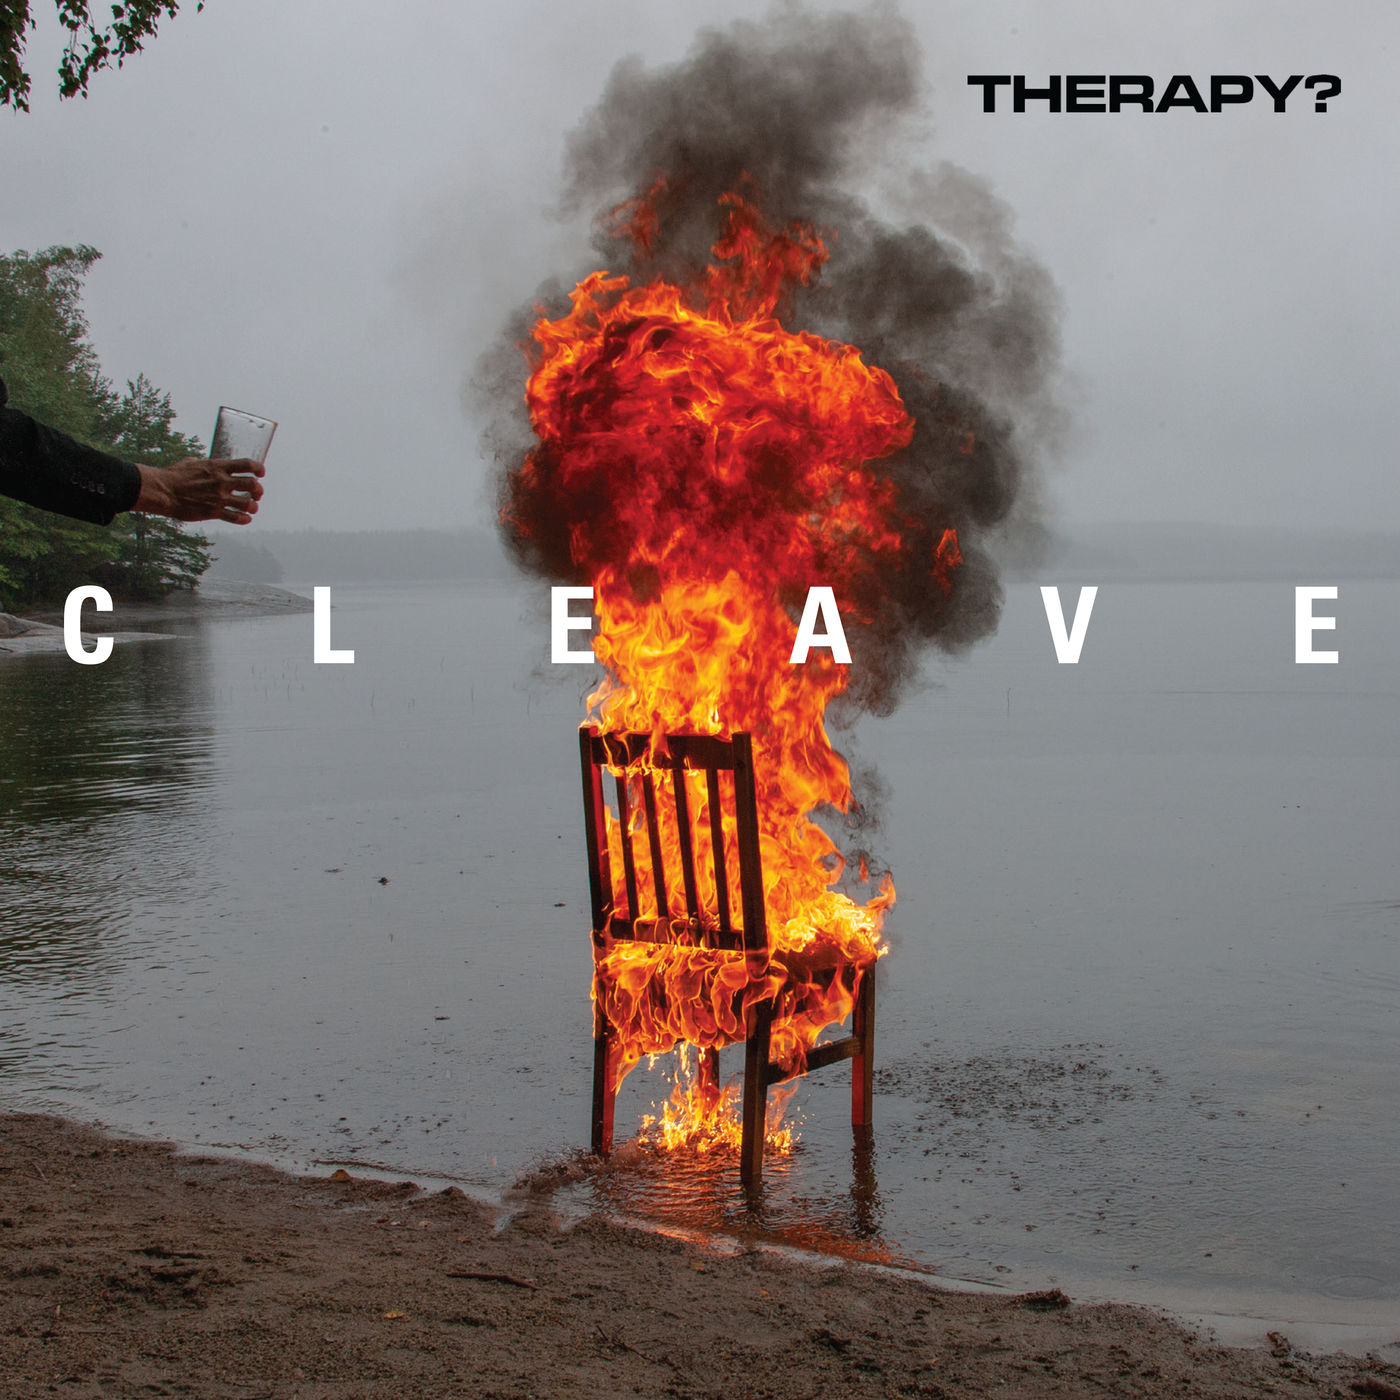 Download torrent Therapy? - Cleave (2018)